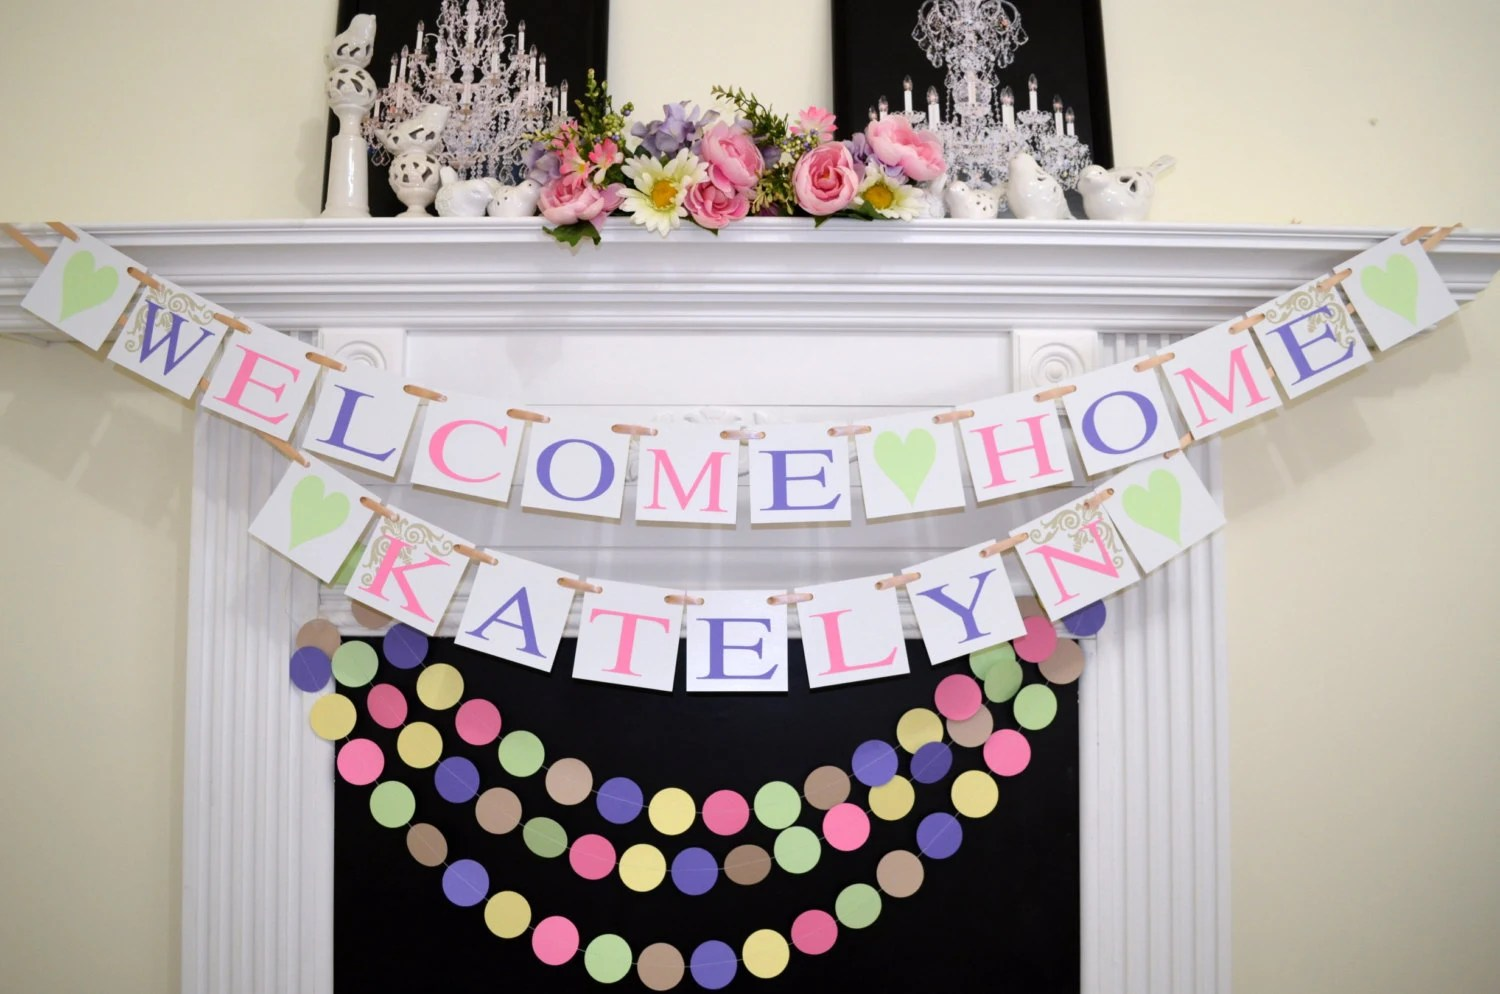 Dorable Ideas To Welcome Newborn Baby Home Sketch - Home Decorating ...